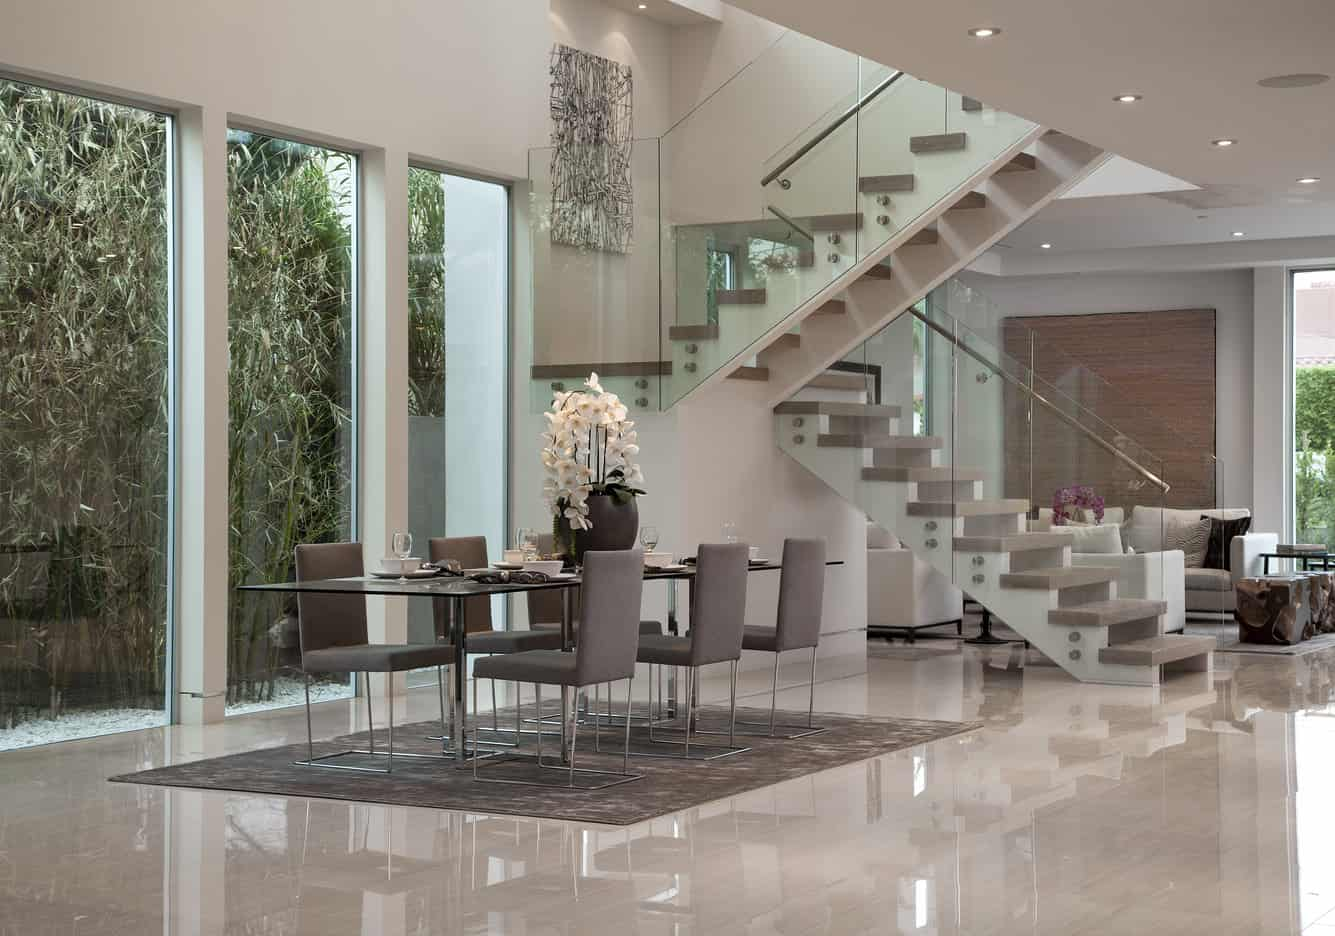 Architecture-Contemporary-Home-Noesis Group-07-1 Kindesign